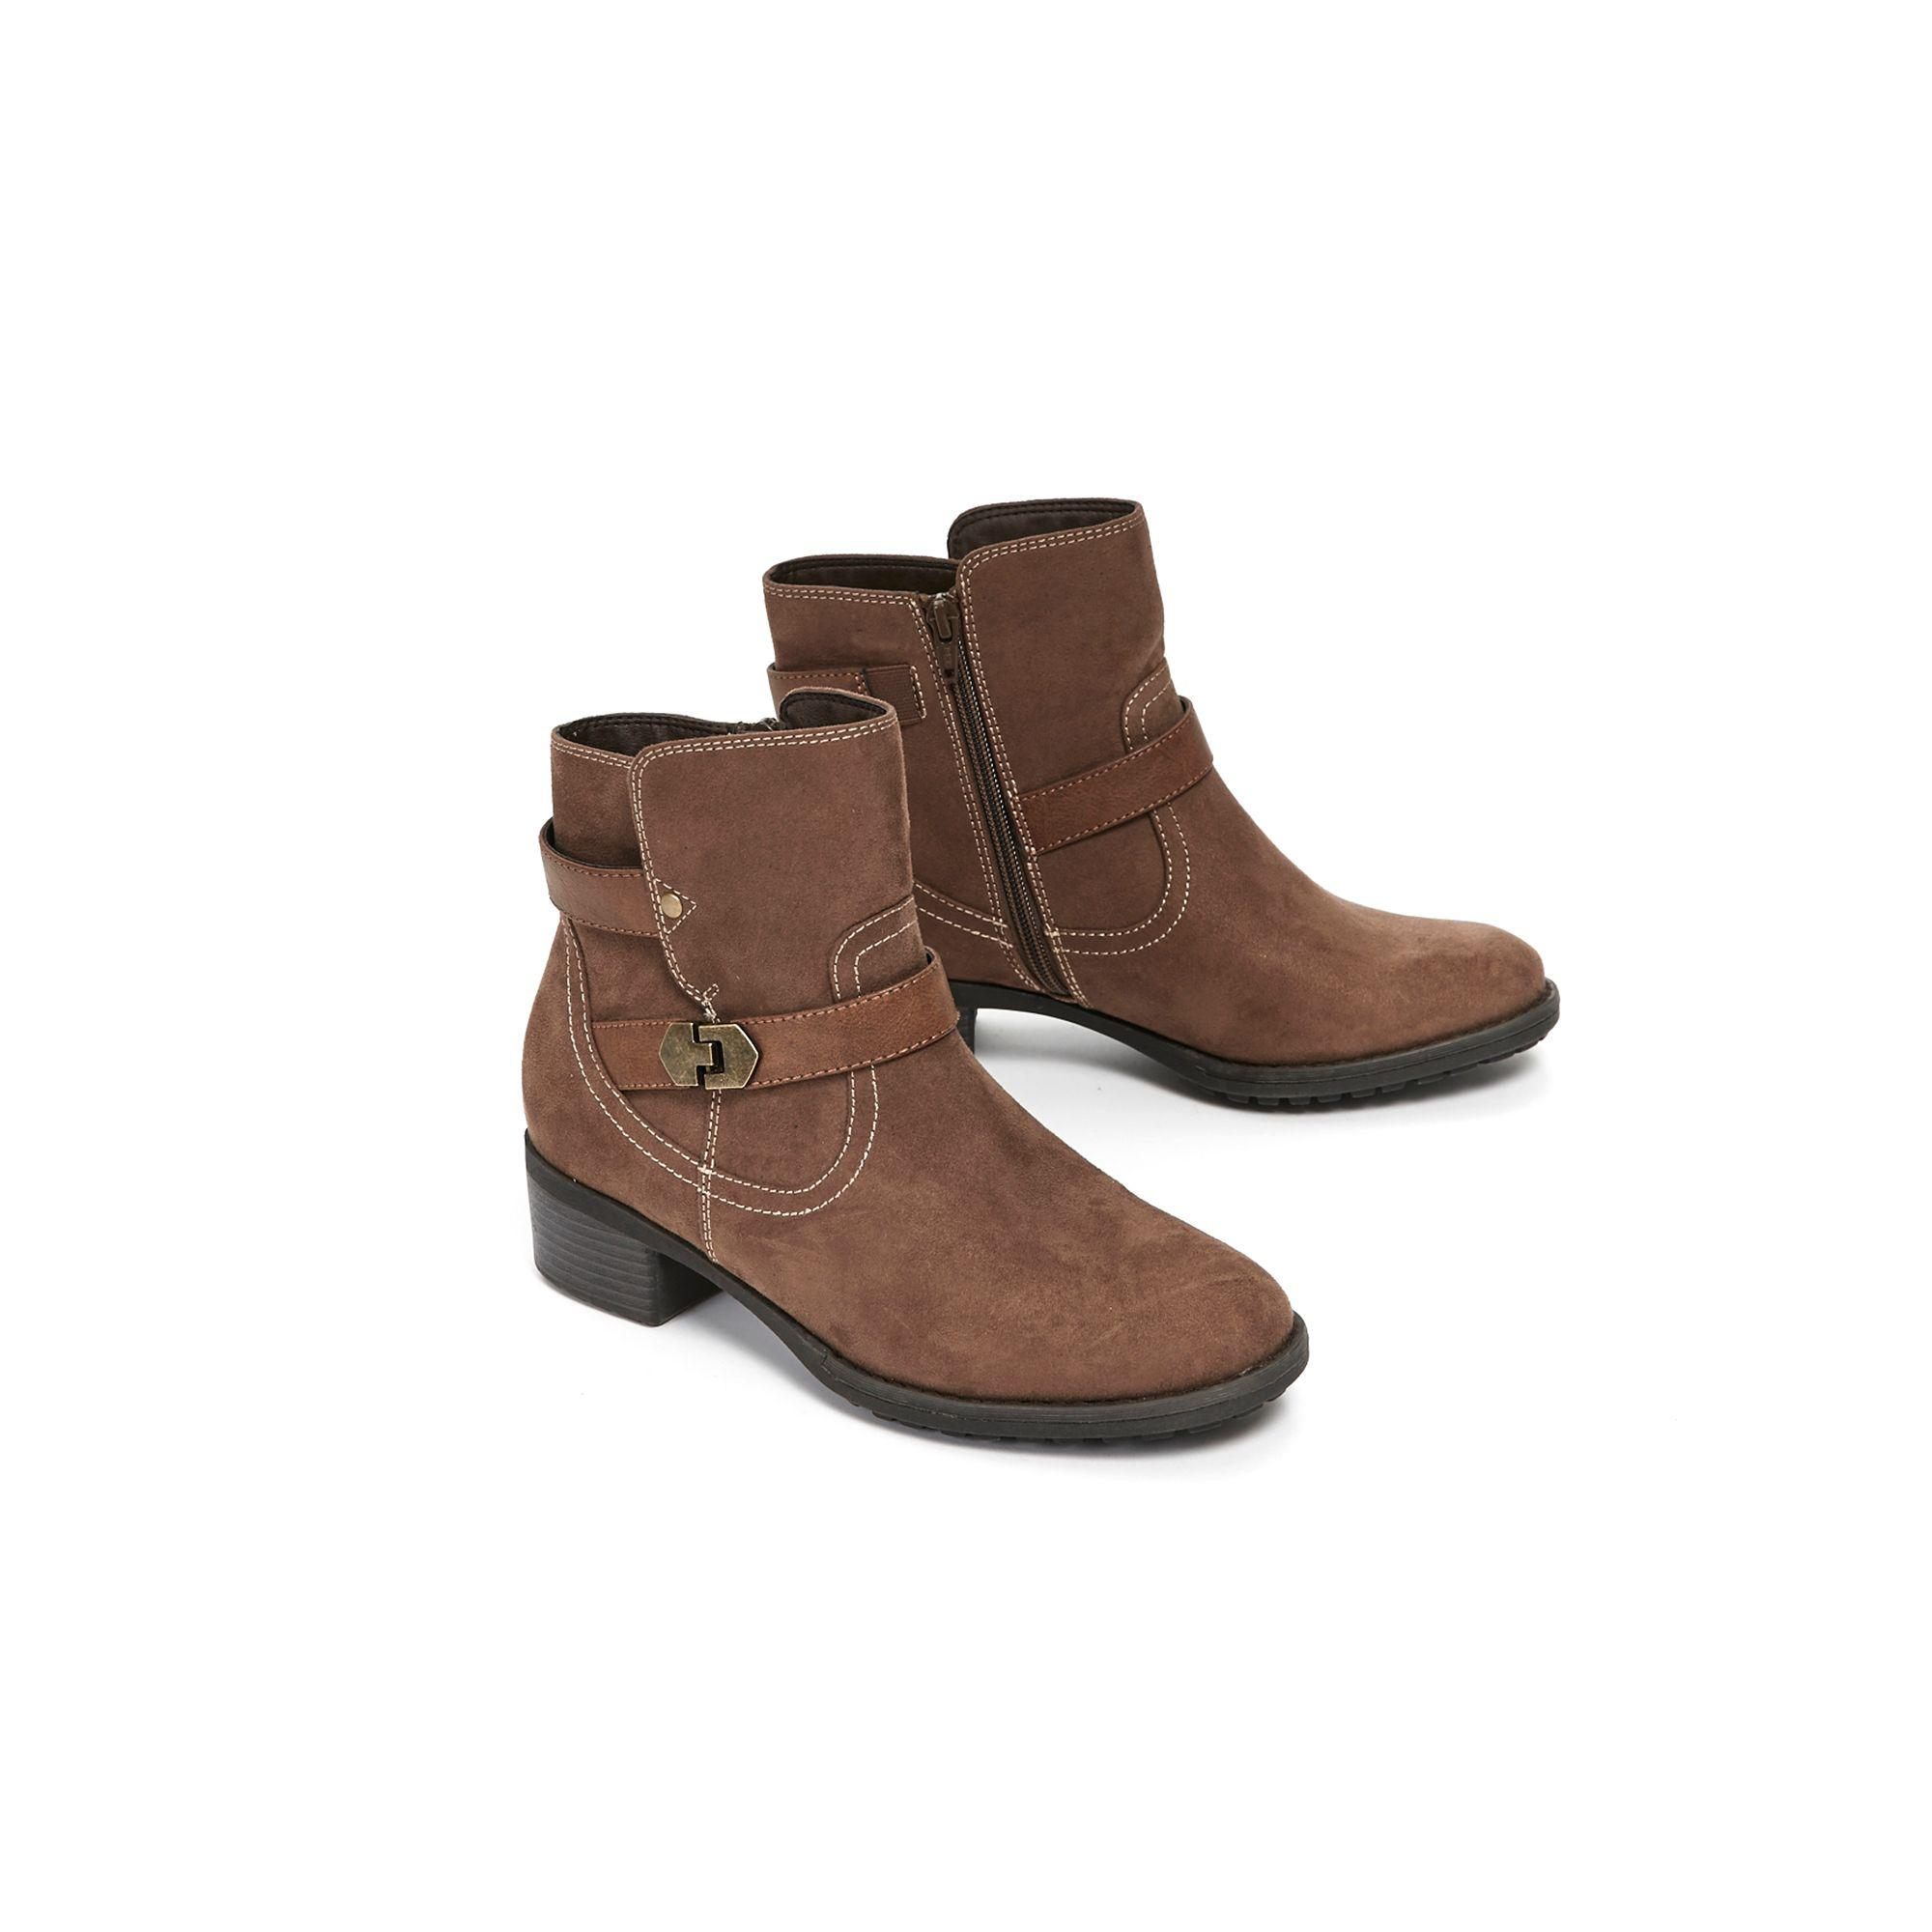 8e2c3d12cba ... Extra Wide Fit Taupe Double Buckle Ankle Boots - Lyst. View fullscreen